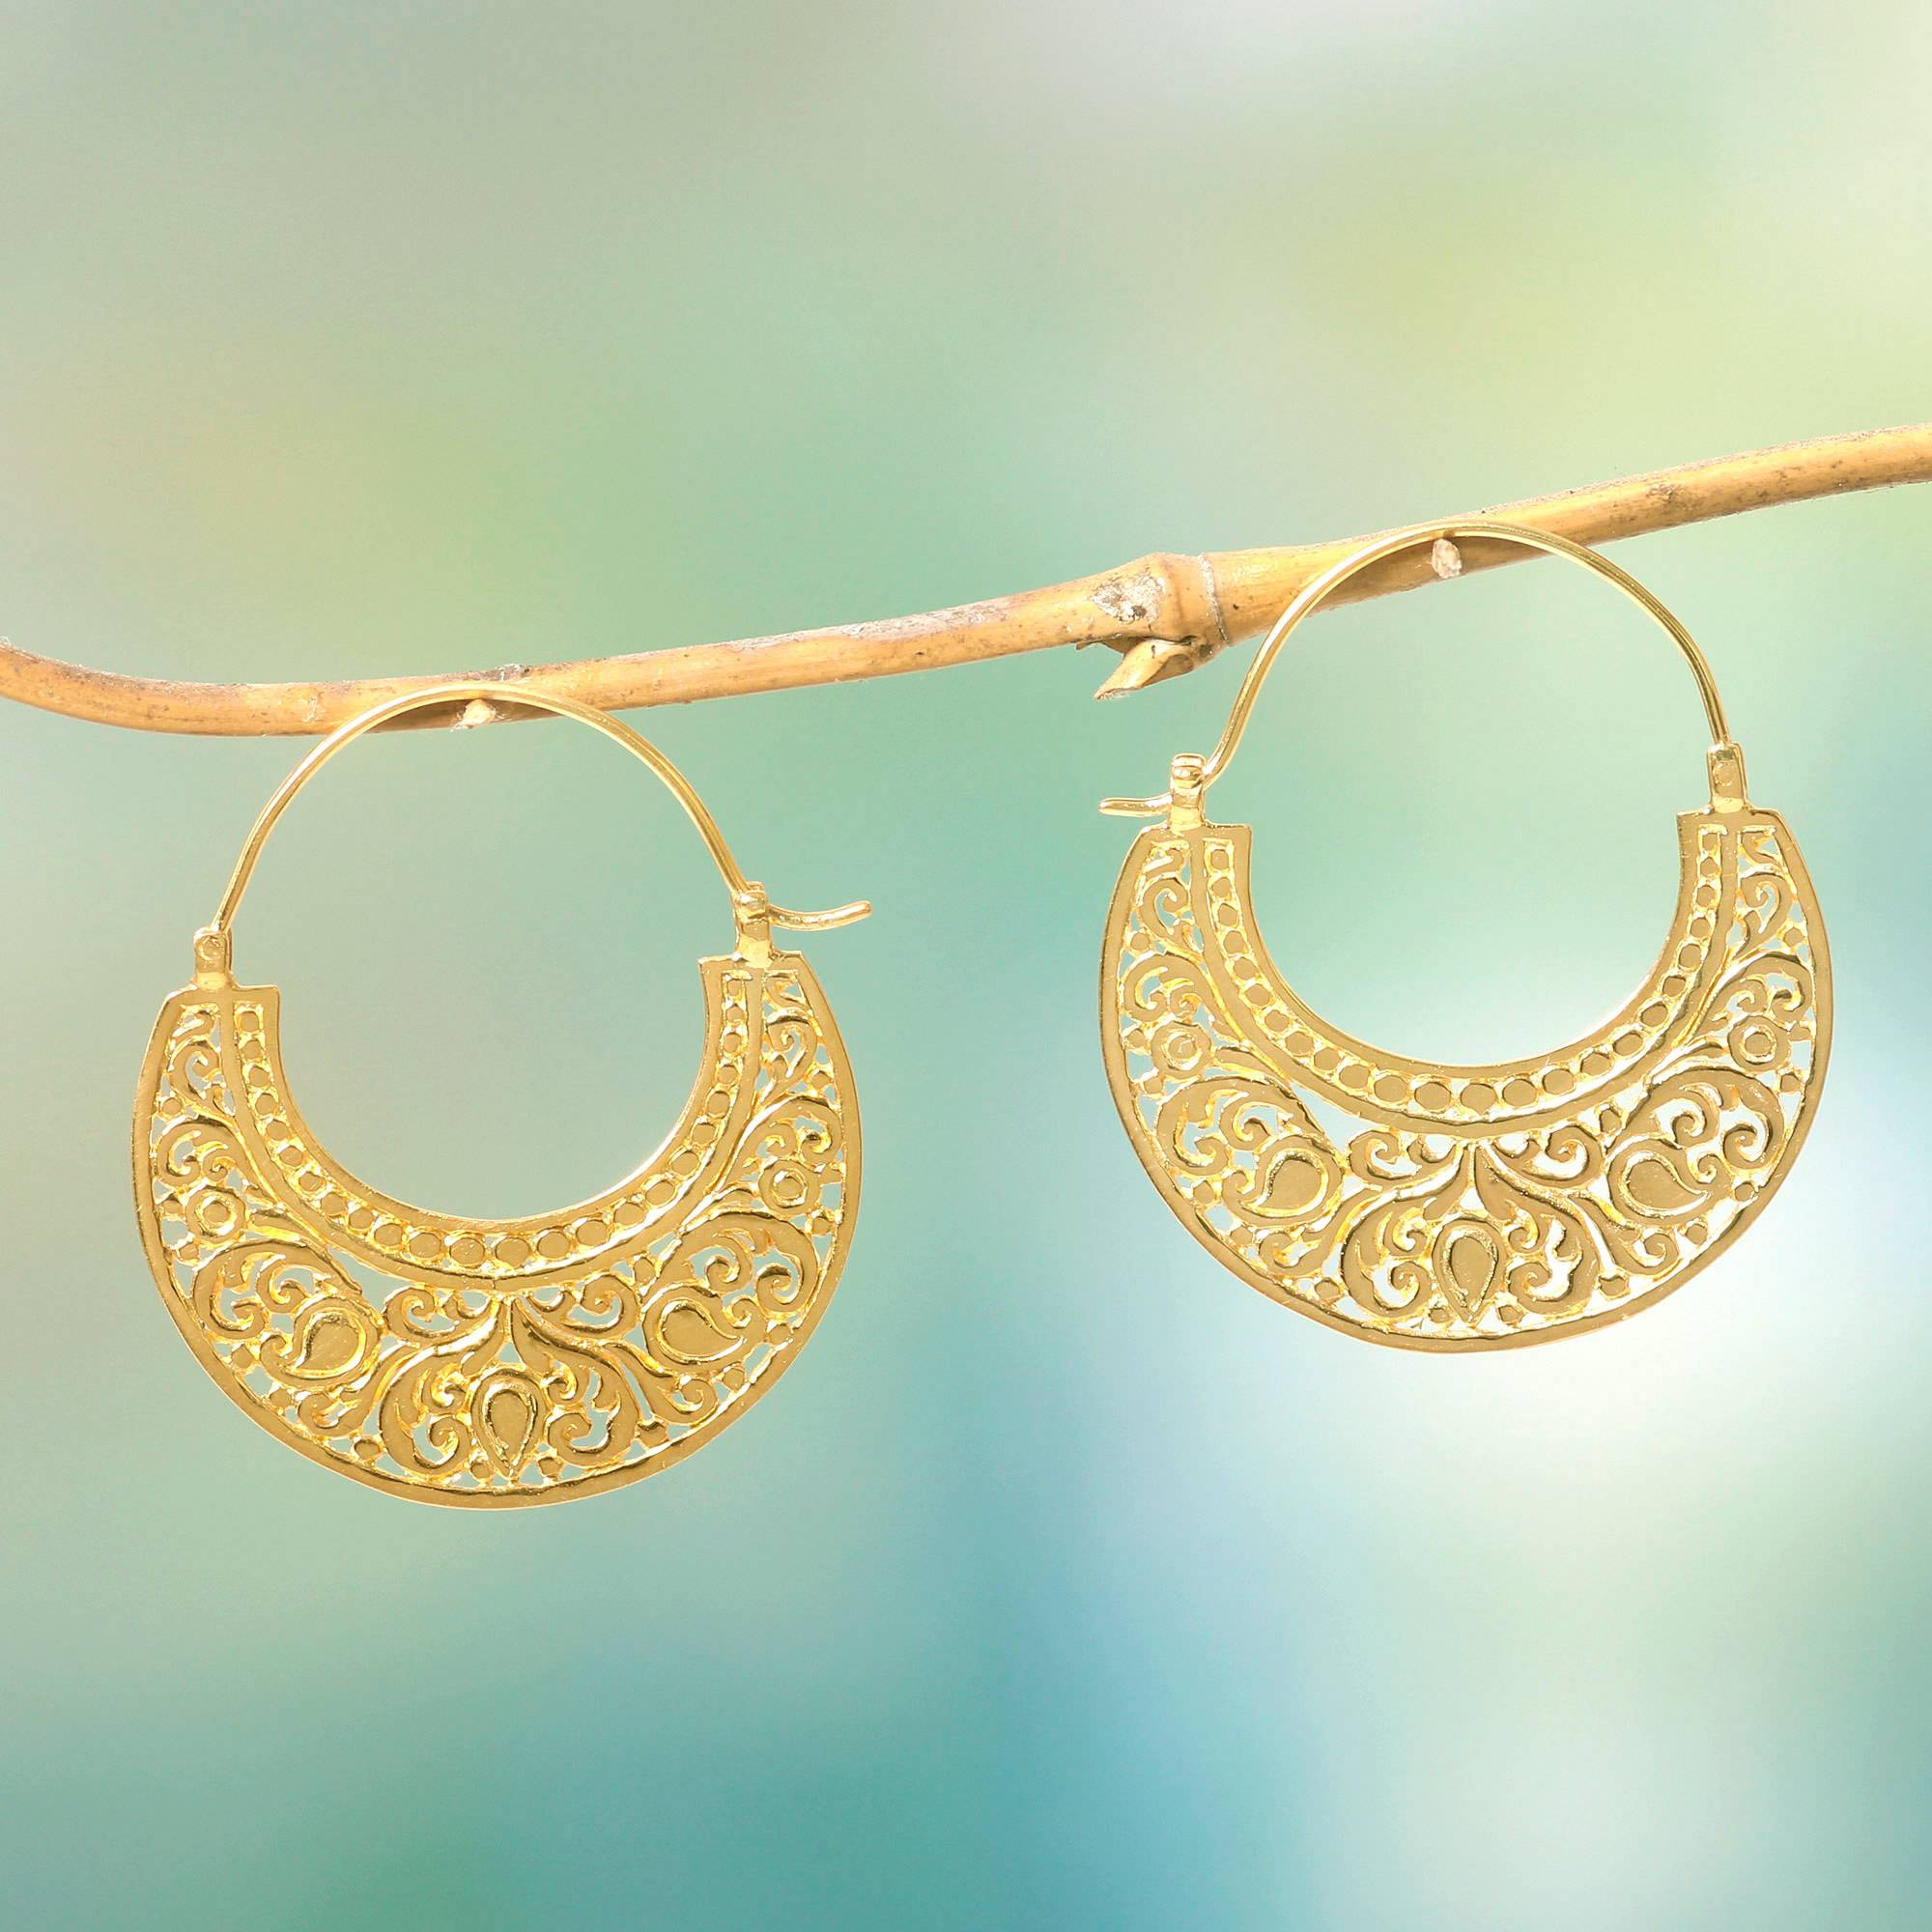 Ornate 22k Gold Vermeil Hoop Earrings, Garden of Eden Jewelry Trends